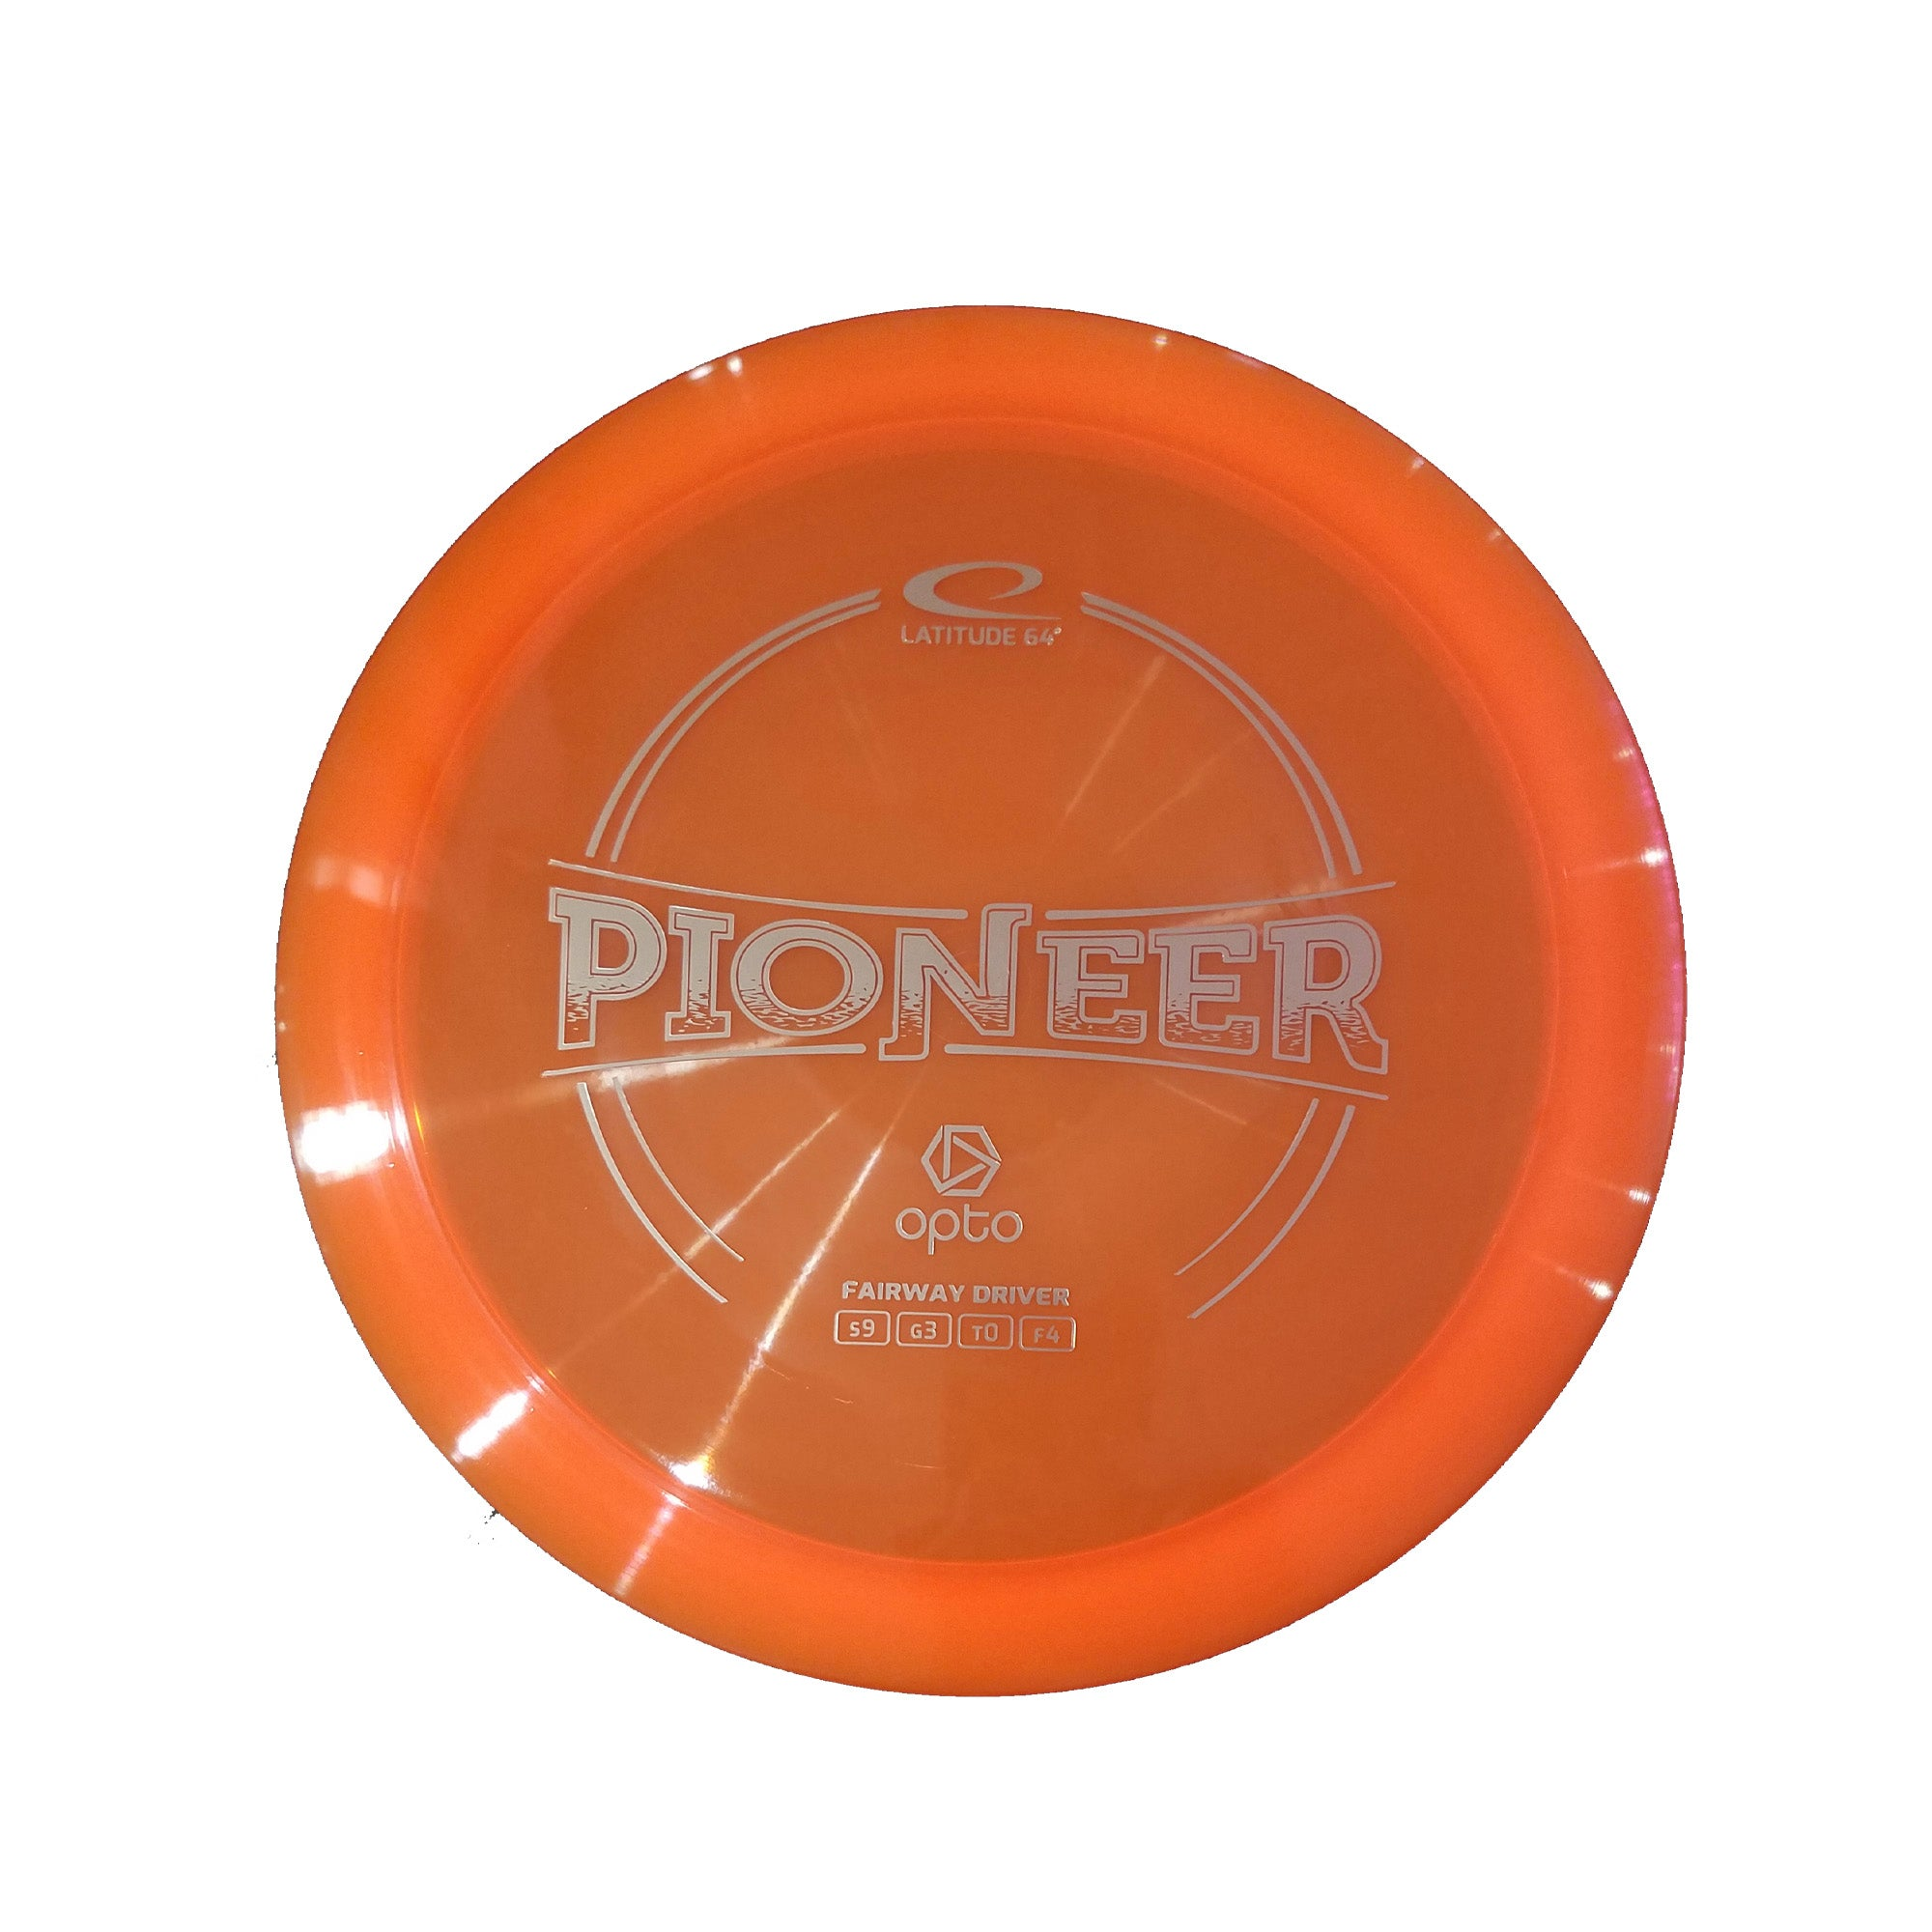 Latitude 64 Opto Pioneer Fairway Driver Disc - 173g